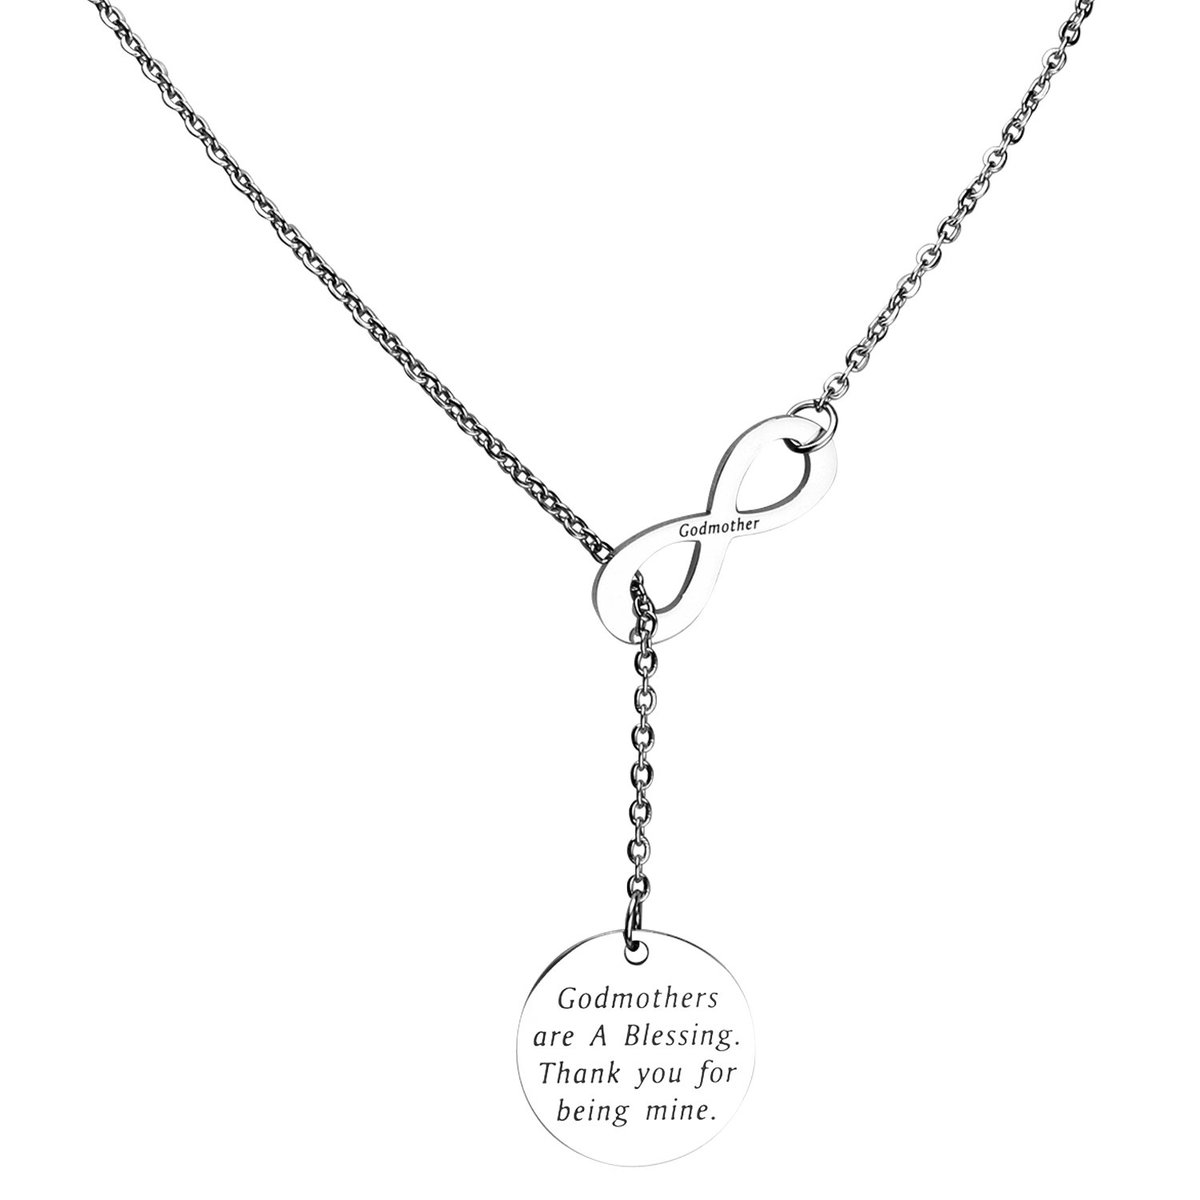 #Giveaways #GIVEAWAY #godmother #goddaughter #necklace #BaptizedBy #baptism #firstcommunion #Blessings #blessing #Christmas #gift #giftideas #gifts  Godmothers/Goddaughters are a blessing. Thank you for being mine. Best godmother/goddaughter gift. All jewelry free, US only.